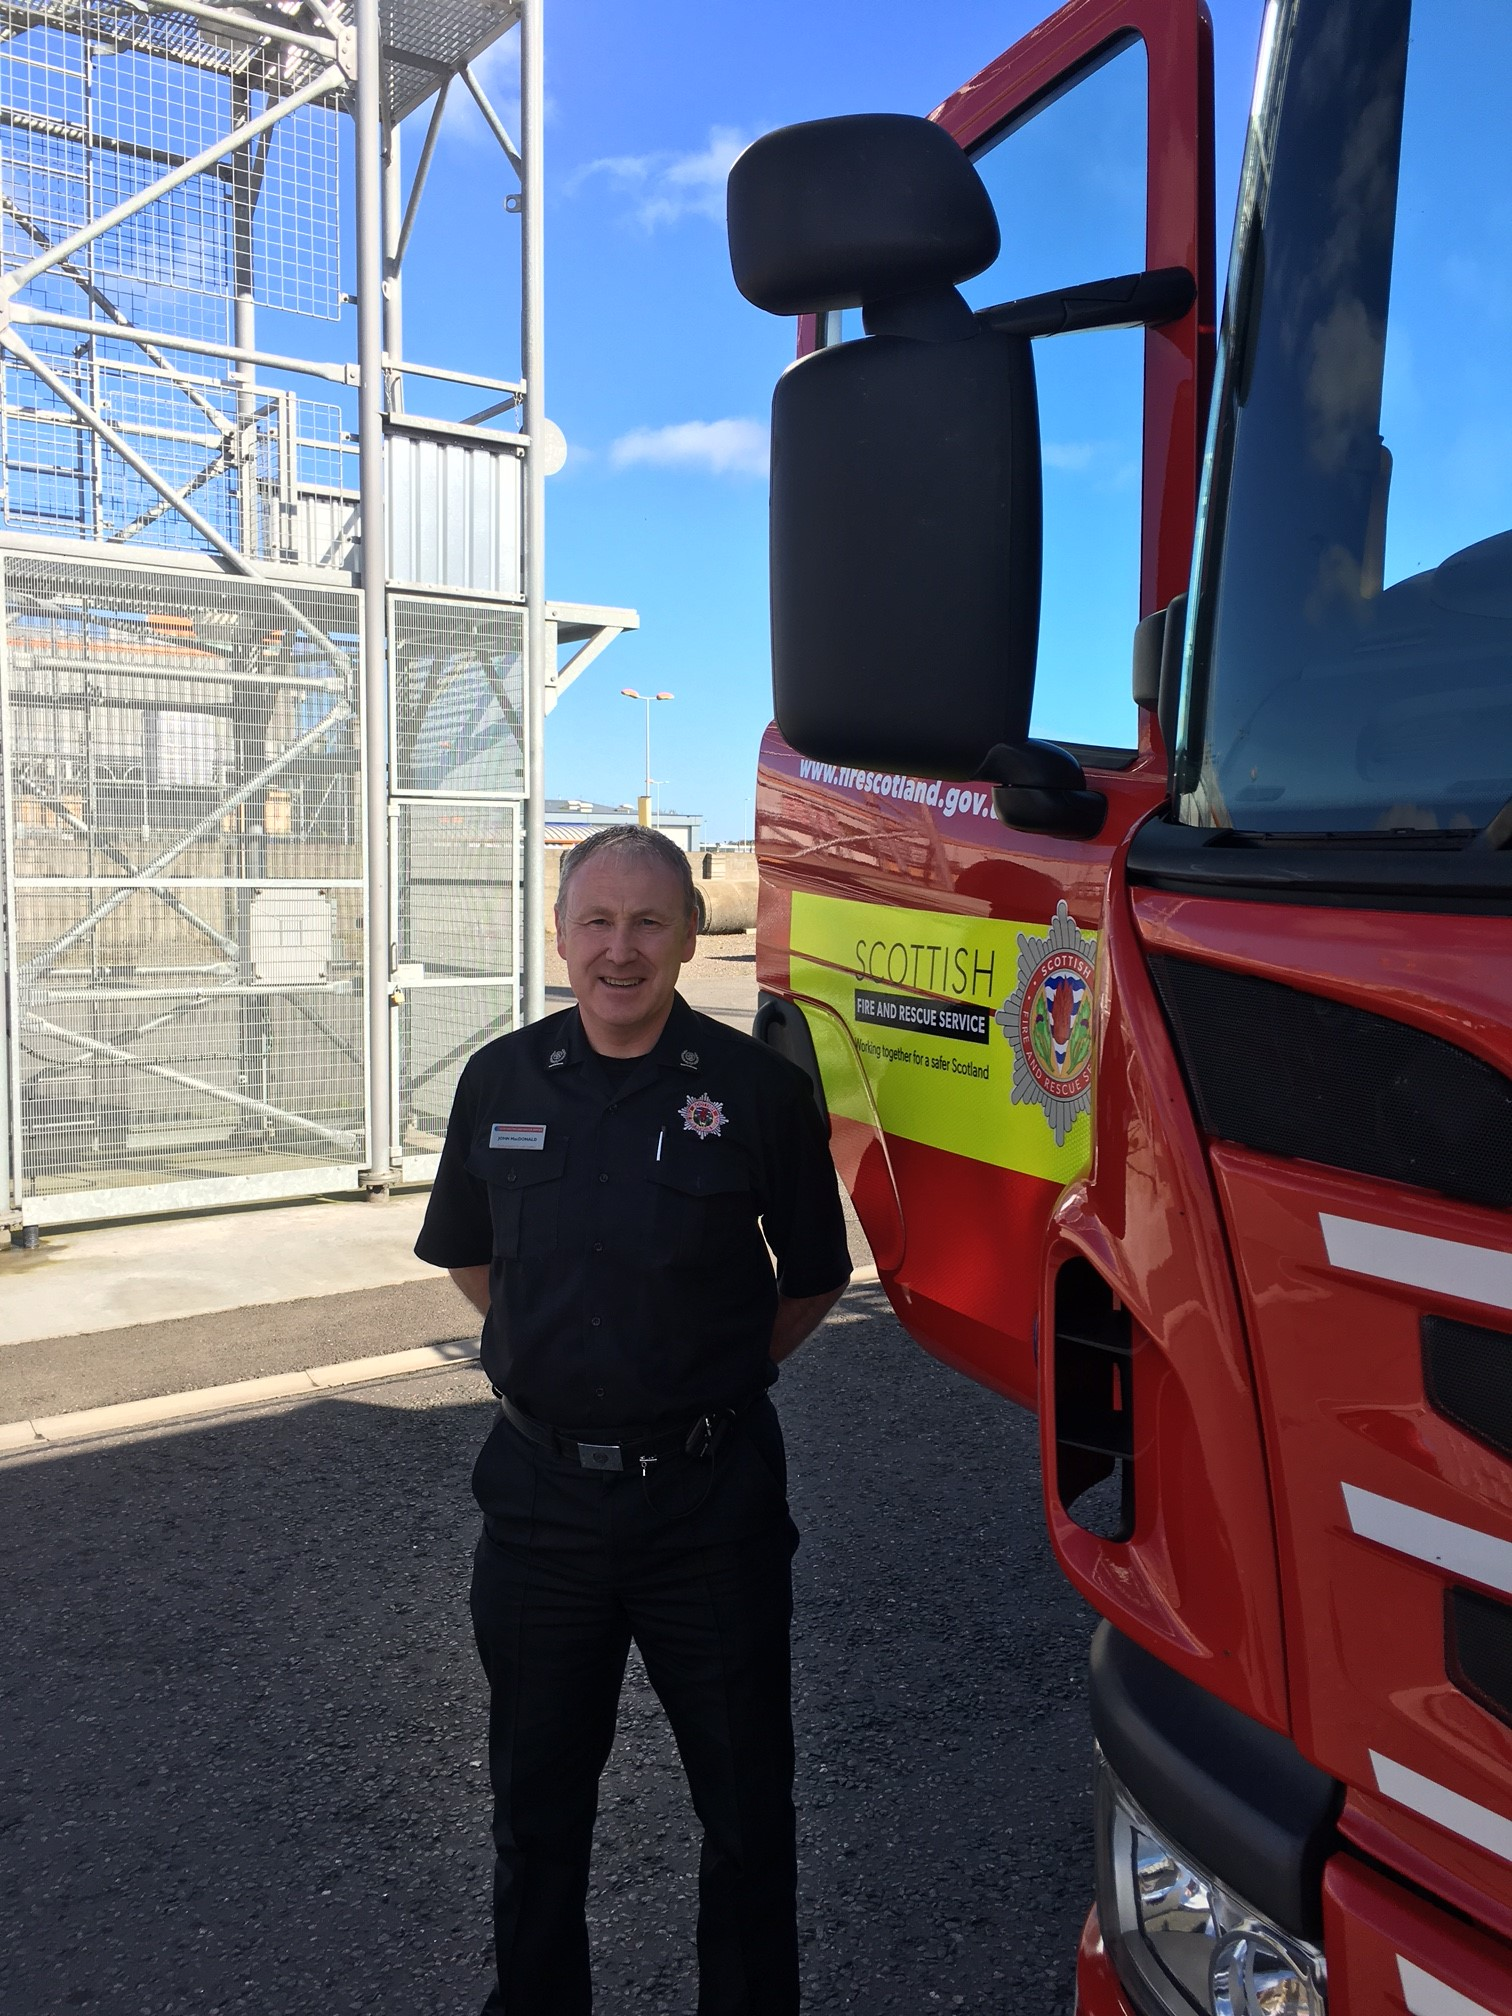 Highland fire chief announces new five year low in deliberate fires